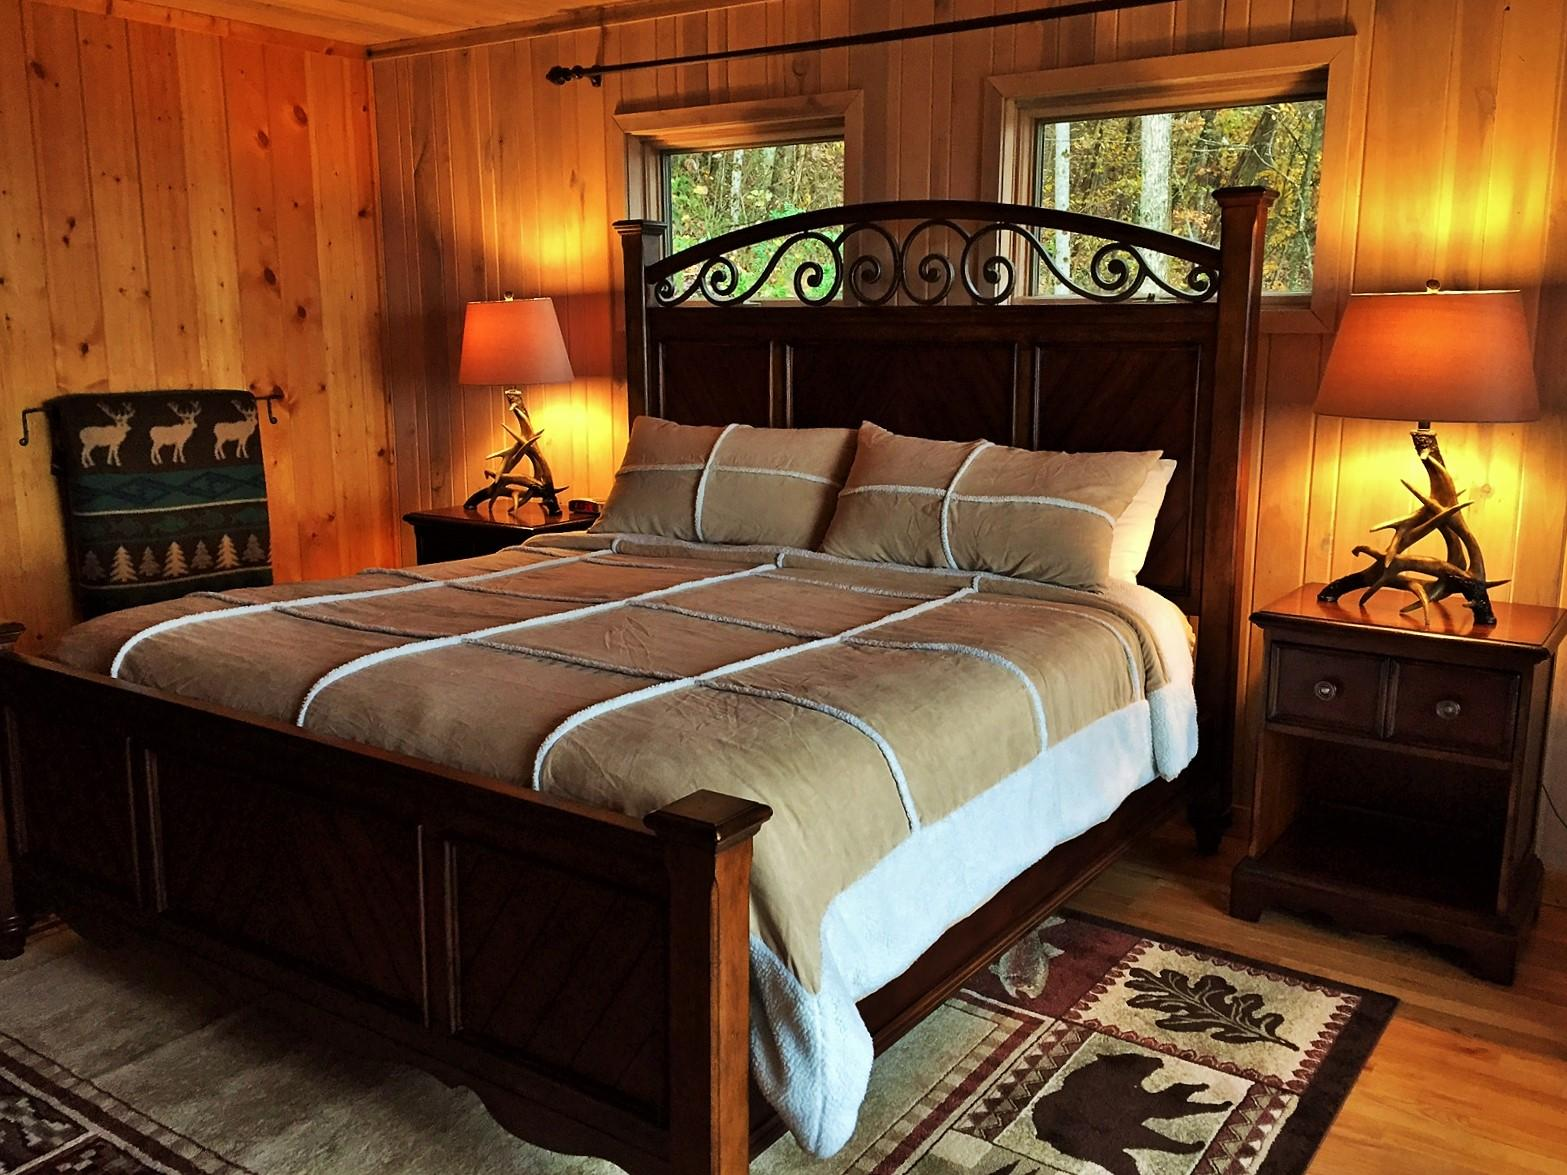 Very Comfortable King Bed with Luxury Linens is positioned to enjoy the Views!